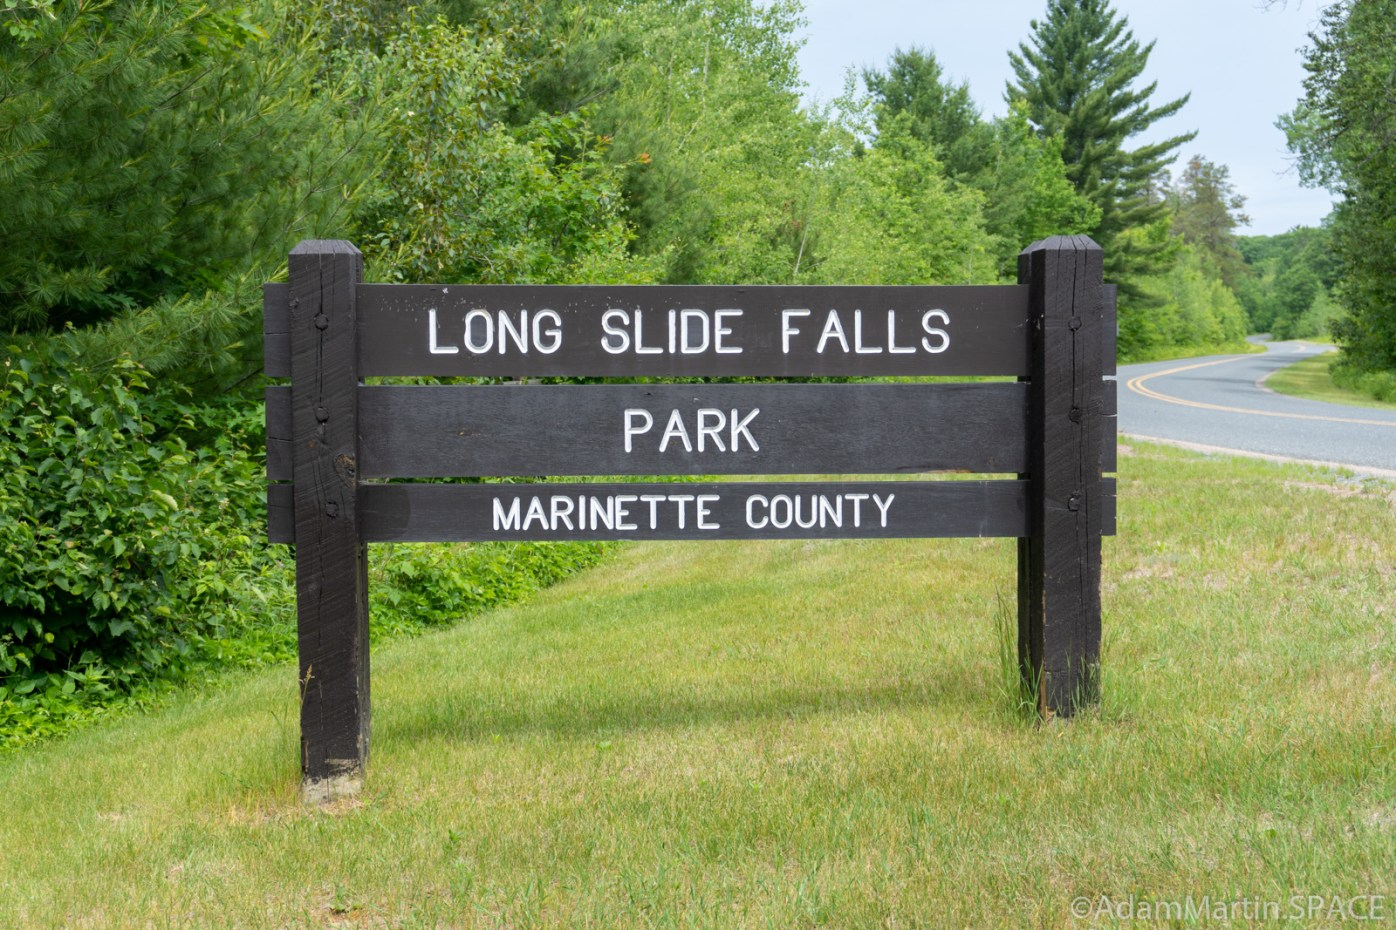 Long Slide Falls - County park entrance sign